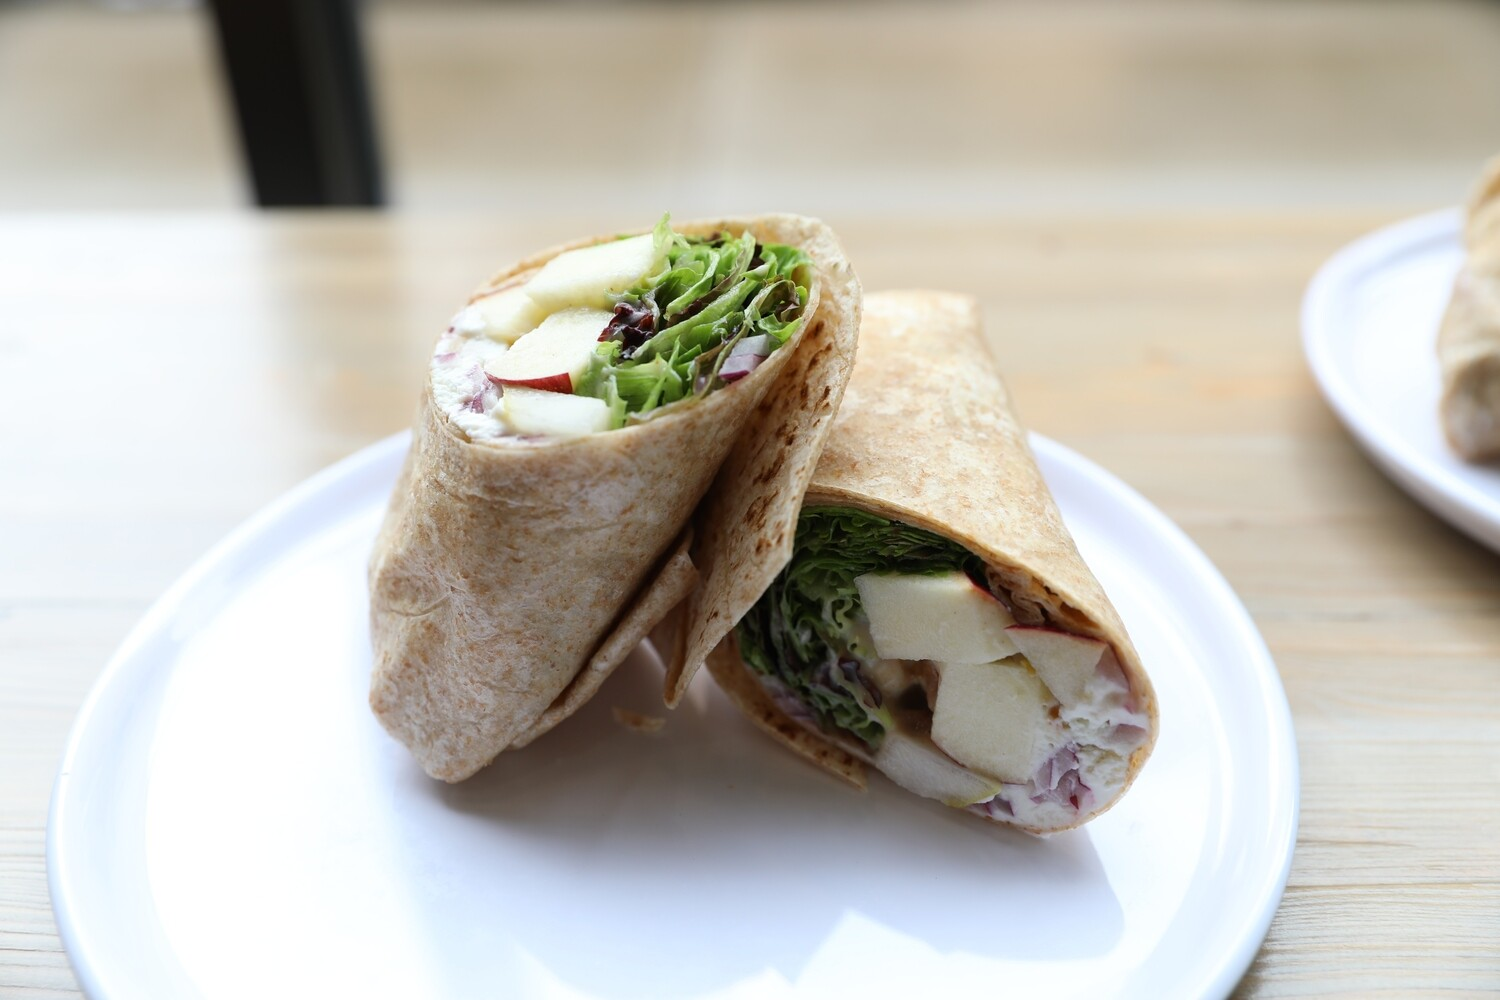 Gallatin Wrap